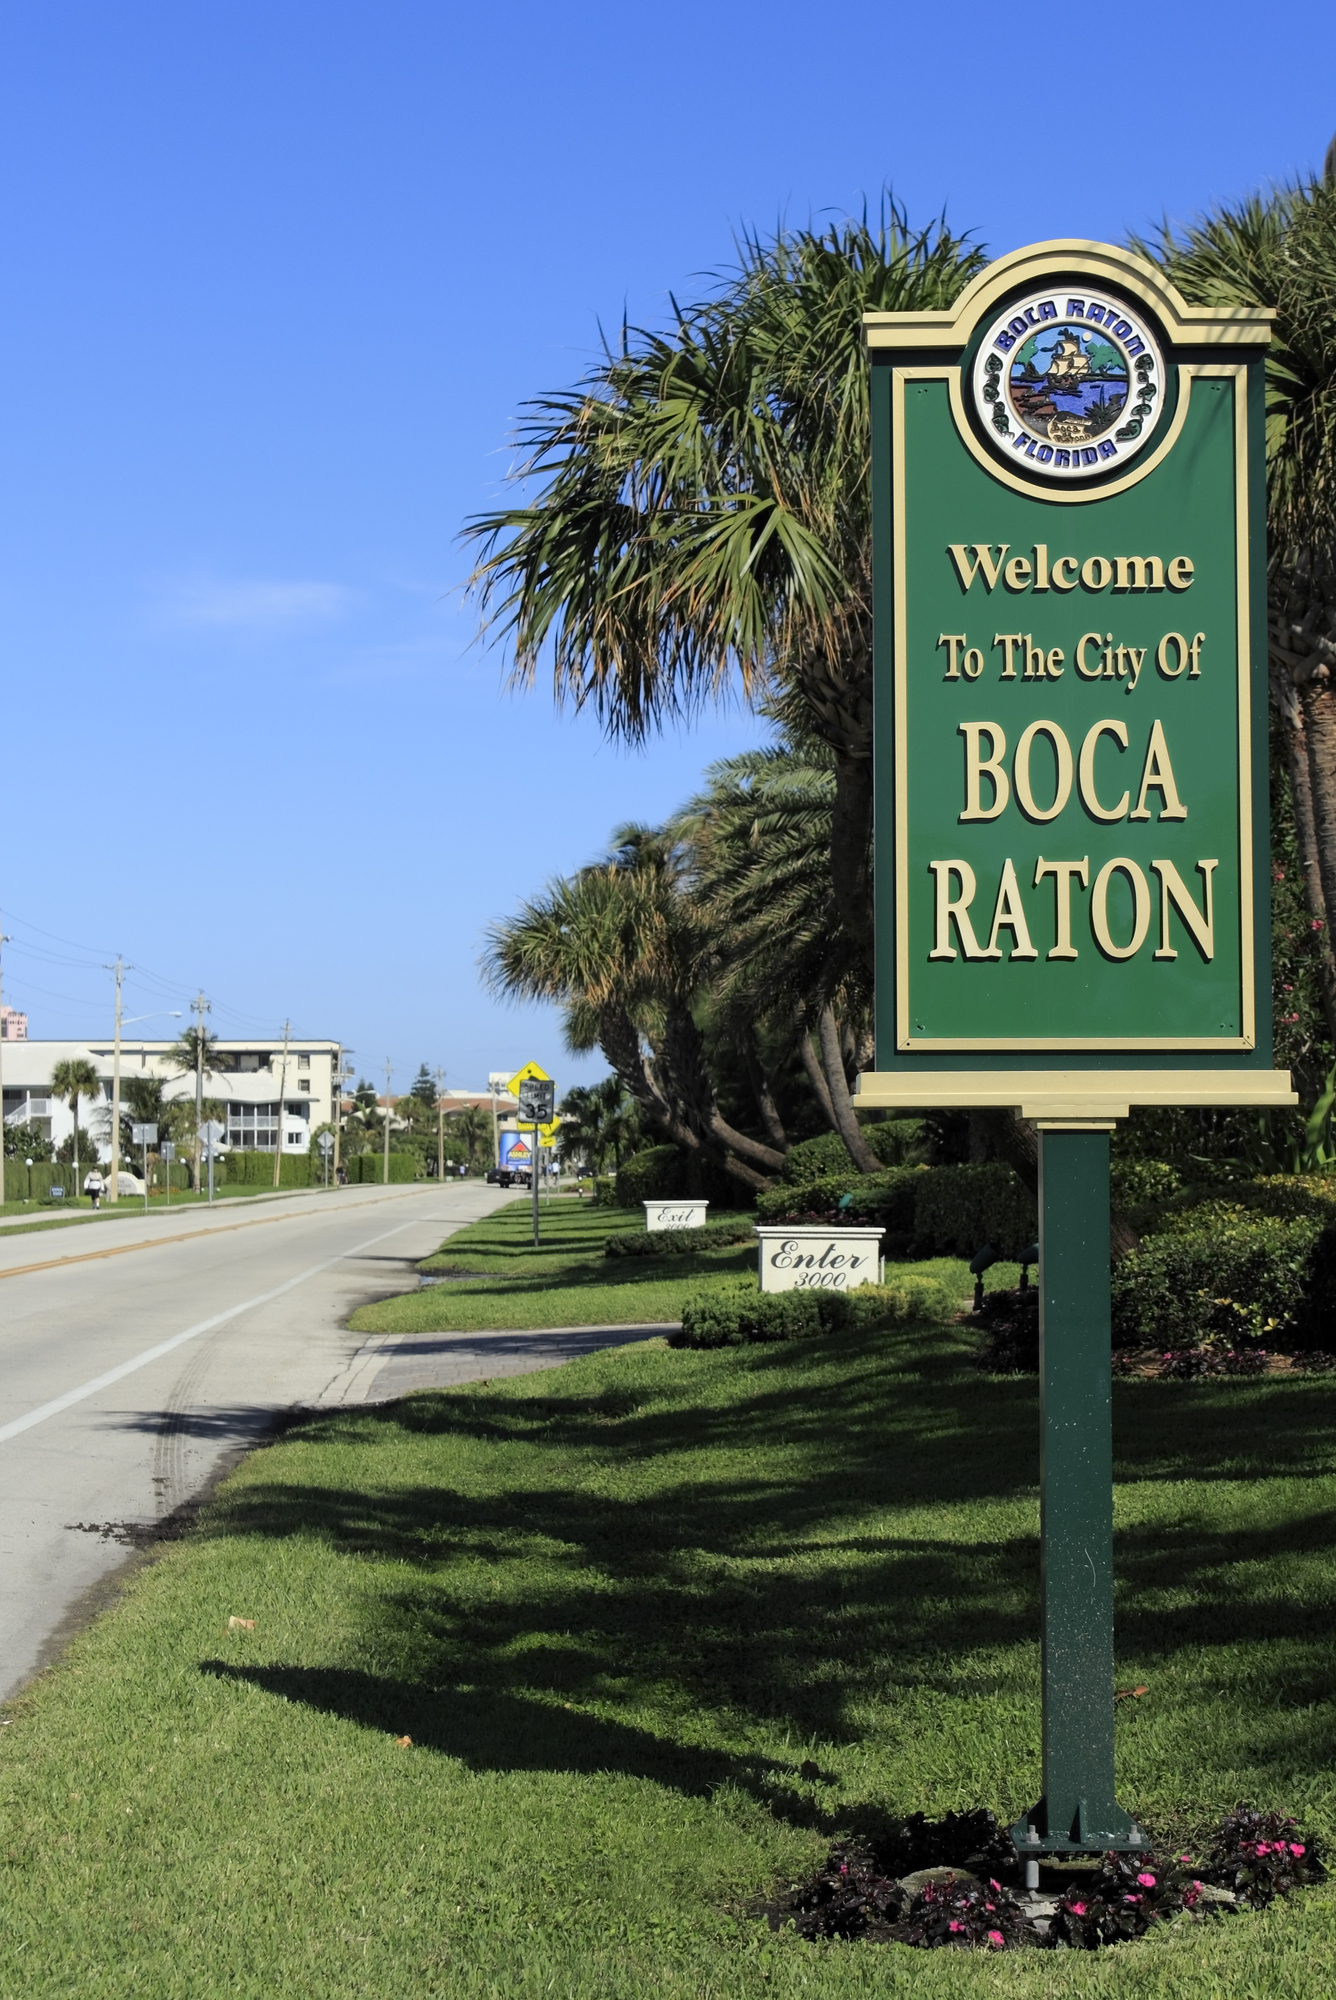 Image of welcome sign at the town line of Boca Raton, Fl